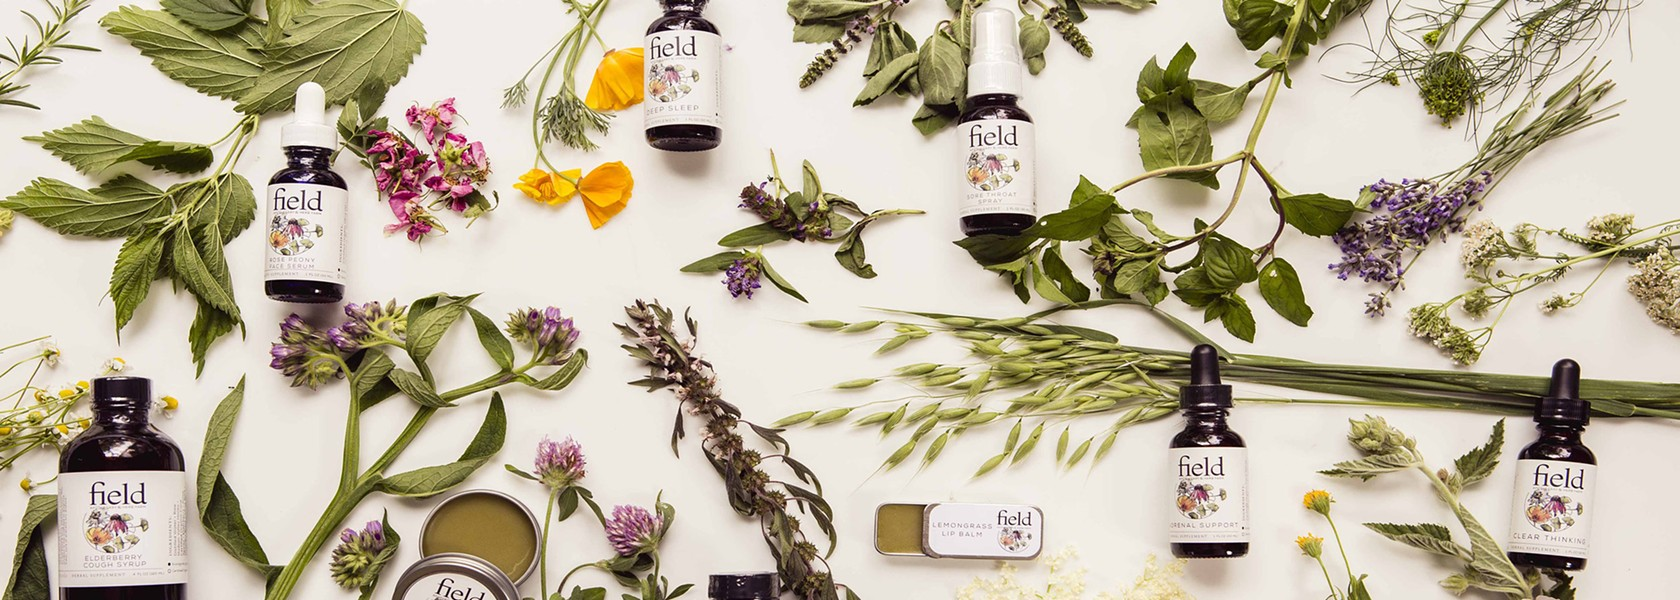 hudson_valley_apothecary_field_apothecary_herb_farm_july2017.jpg